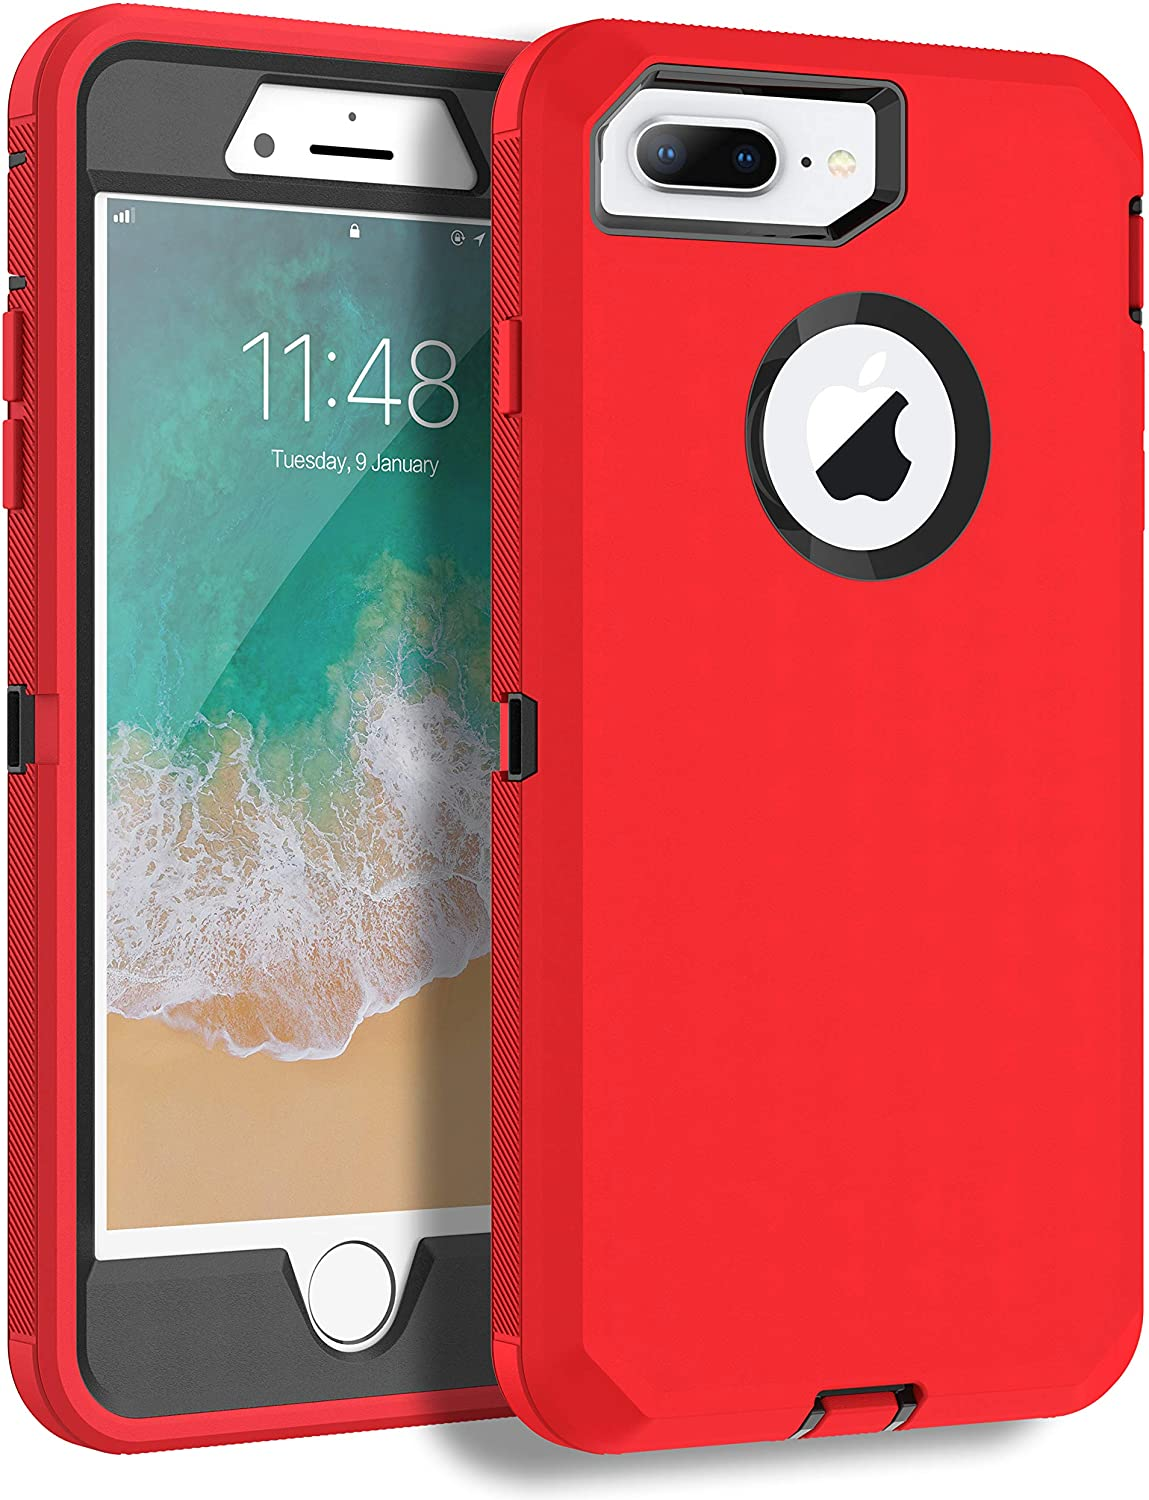 MXX iPhone 8 Plus Heavy Duty Protective Case with Screen Protector [3 Layers] Rugged Rubber Shockproof Protection Cover for Apple iPhone 7 Plus - iPhone 8 Plus/Apple Phone 8+ (Red/Black)